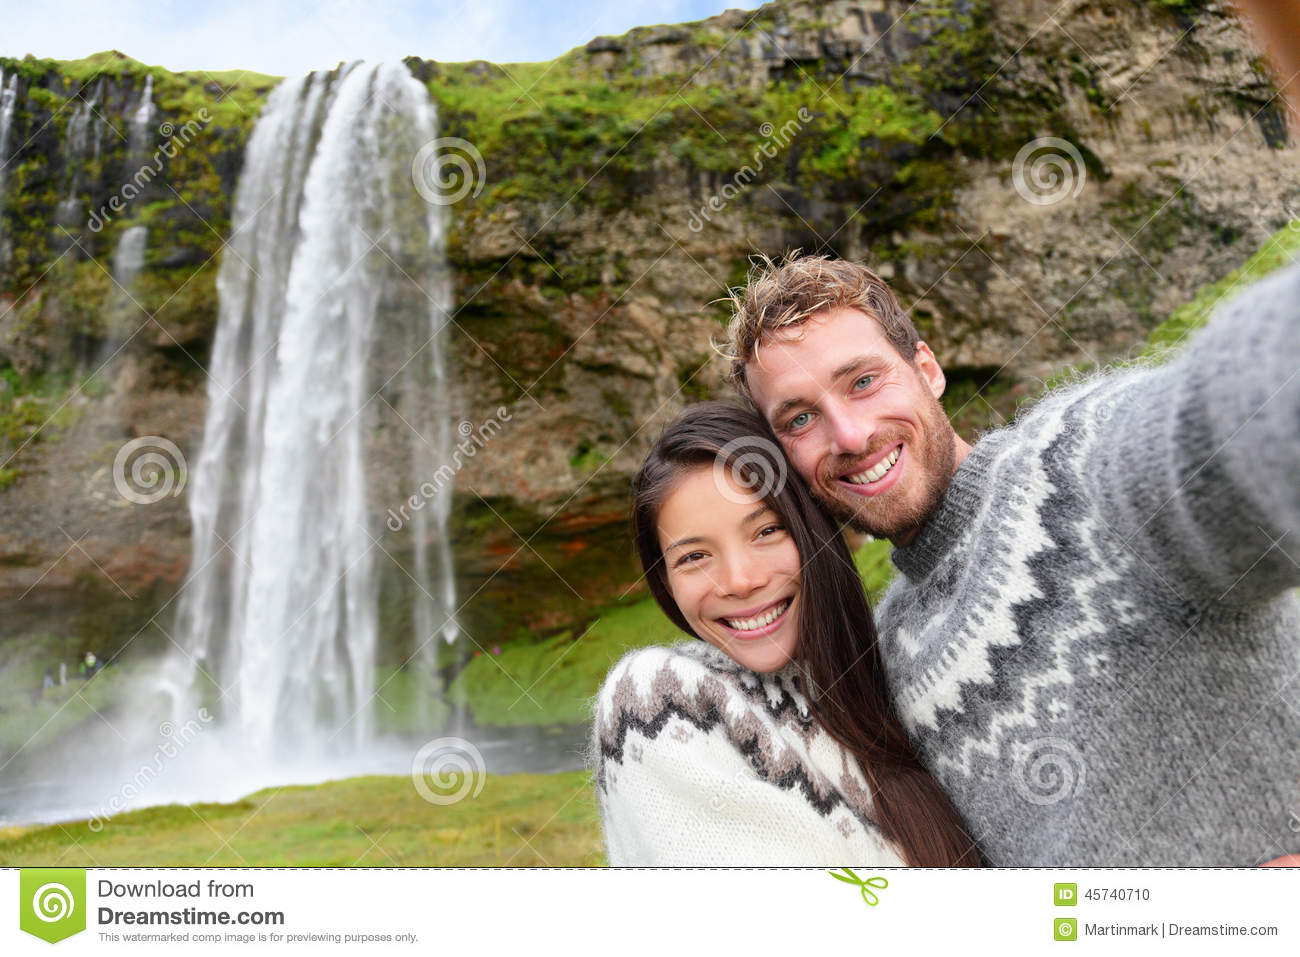 Iceland couple selfie wearing Icelandic sweaters